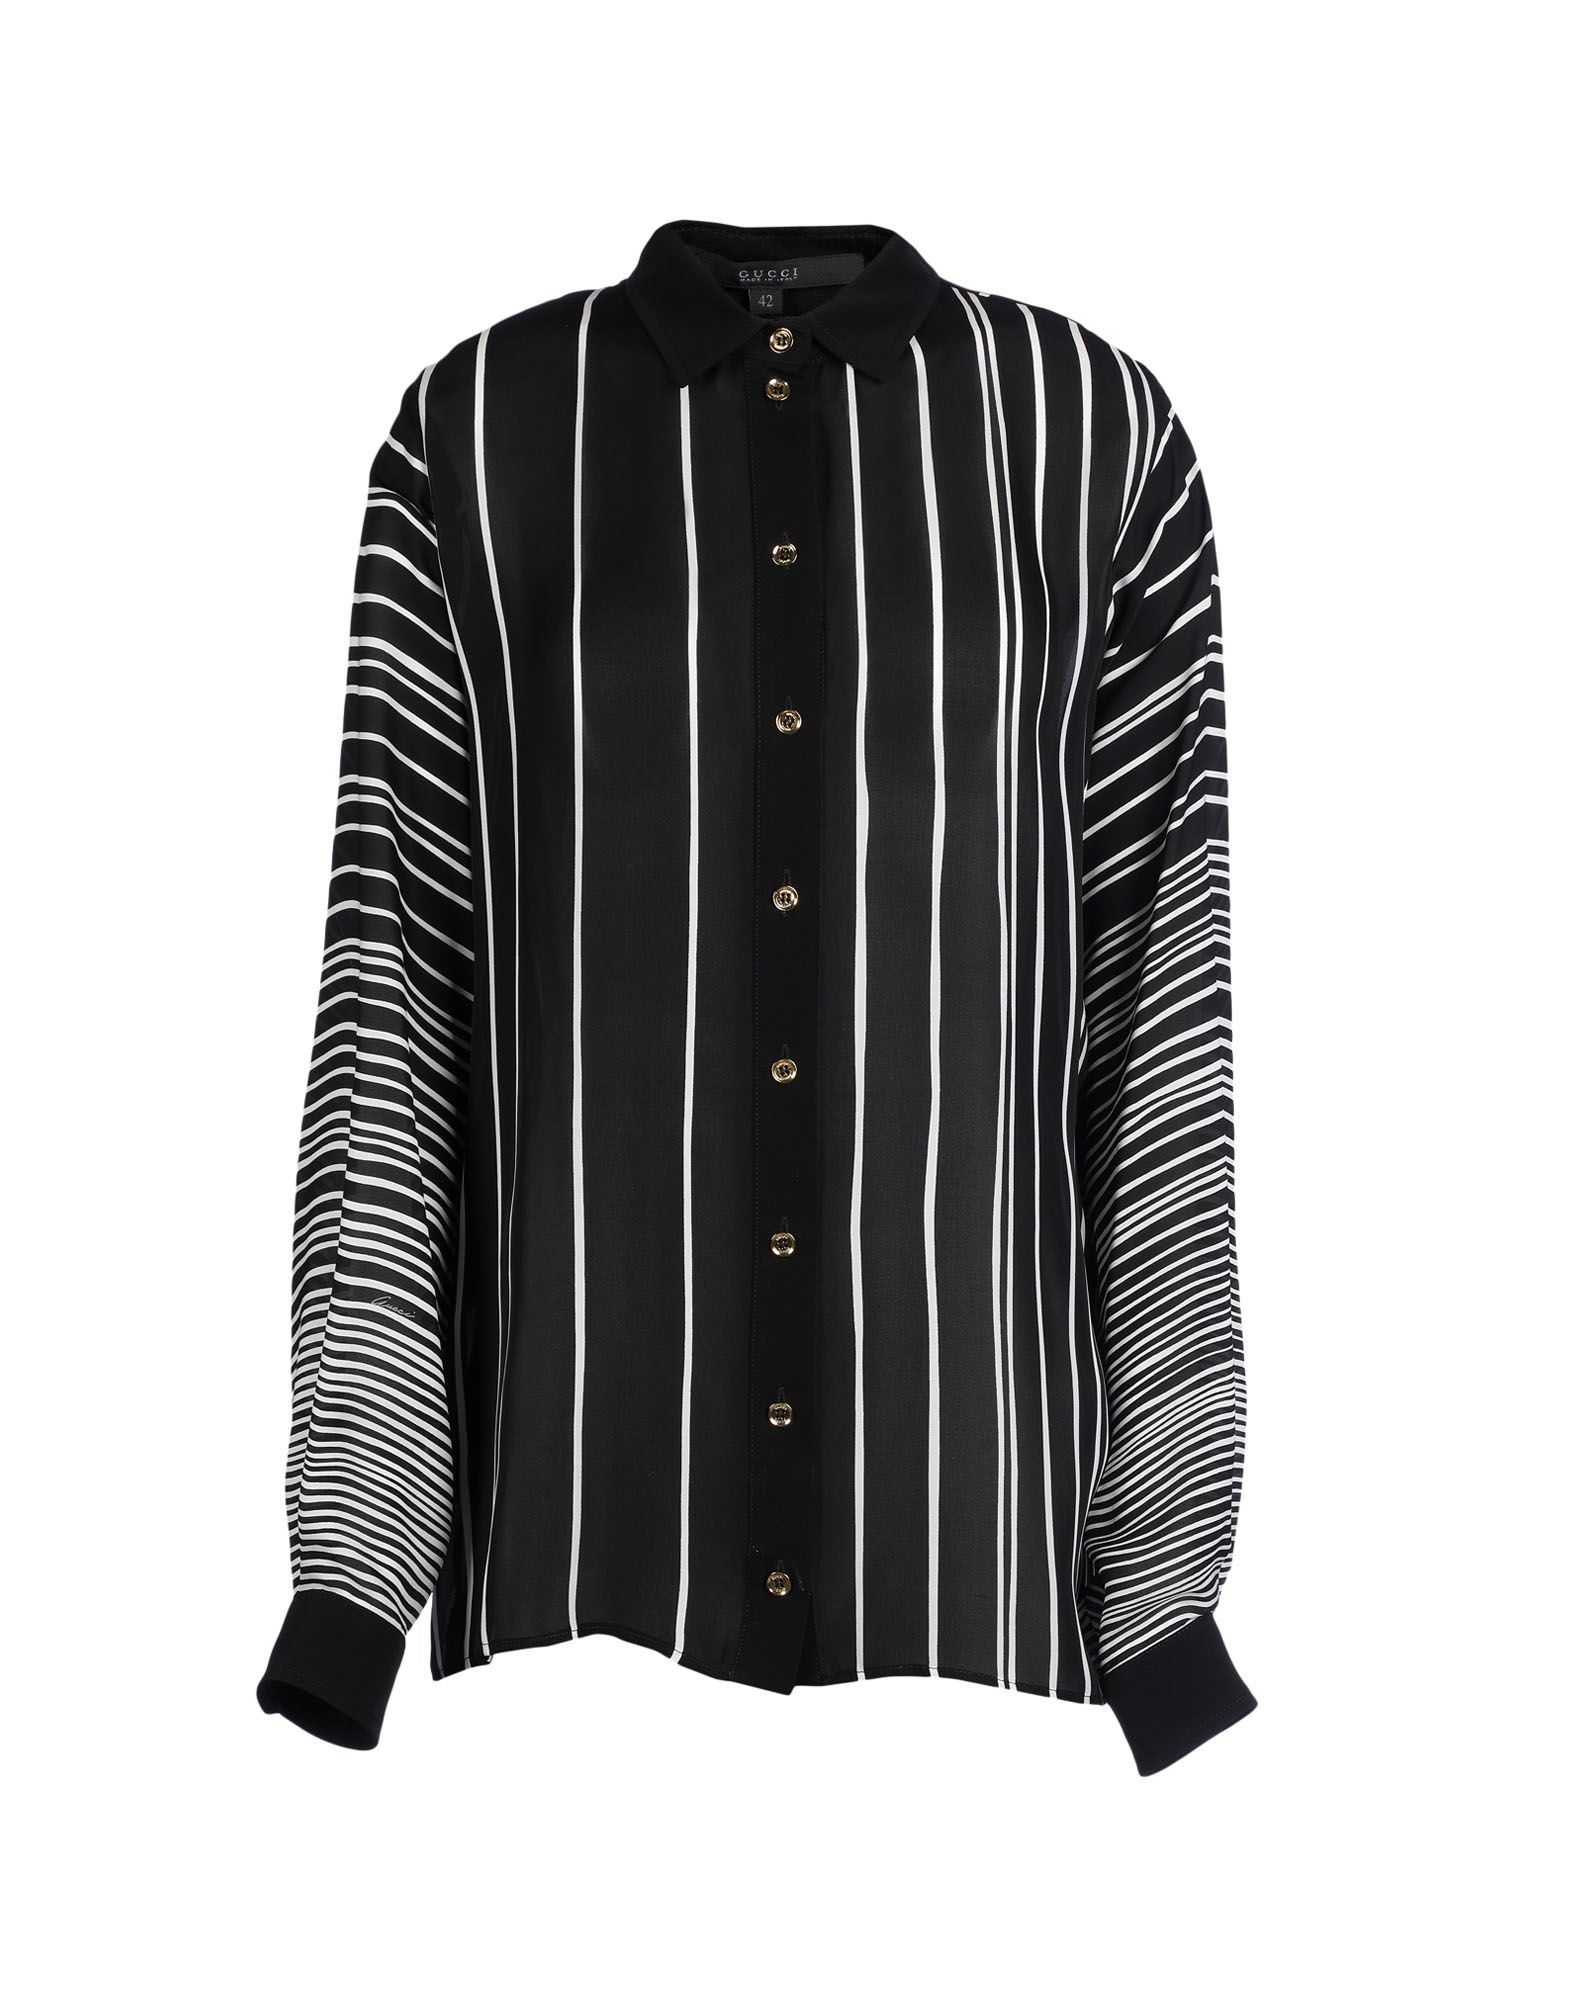 4cebed8e Gucci Patterned Shirts & Blouses - Women Gucci Patterned Shirts ...